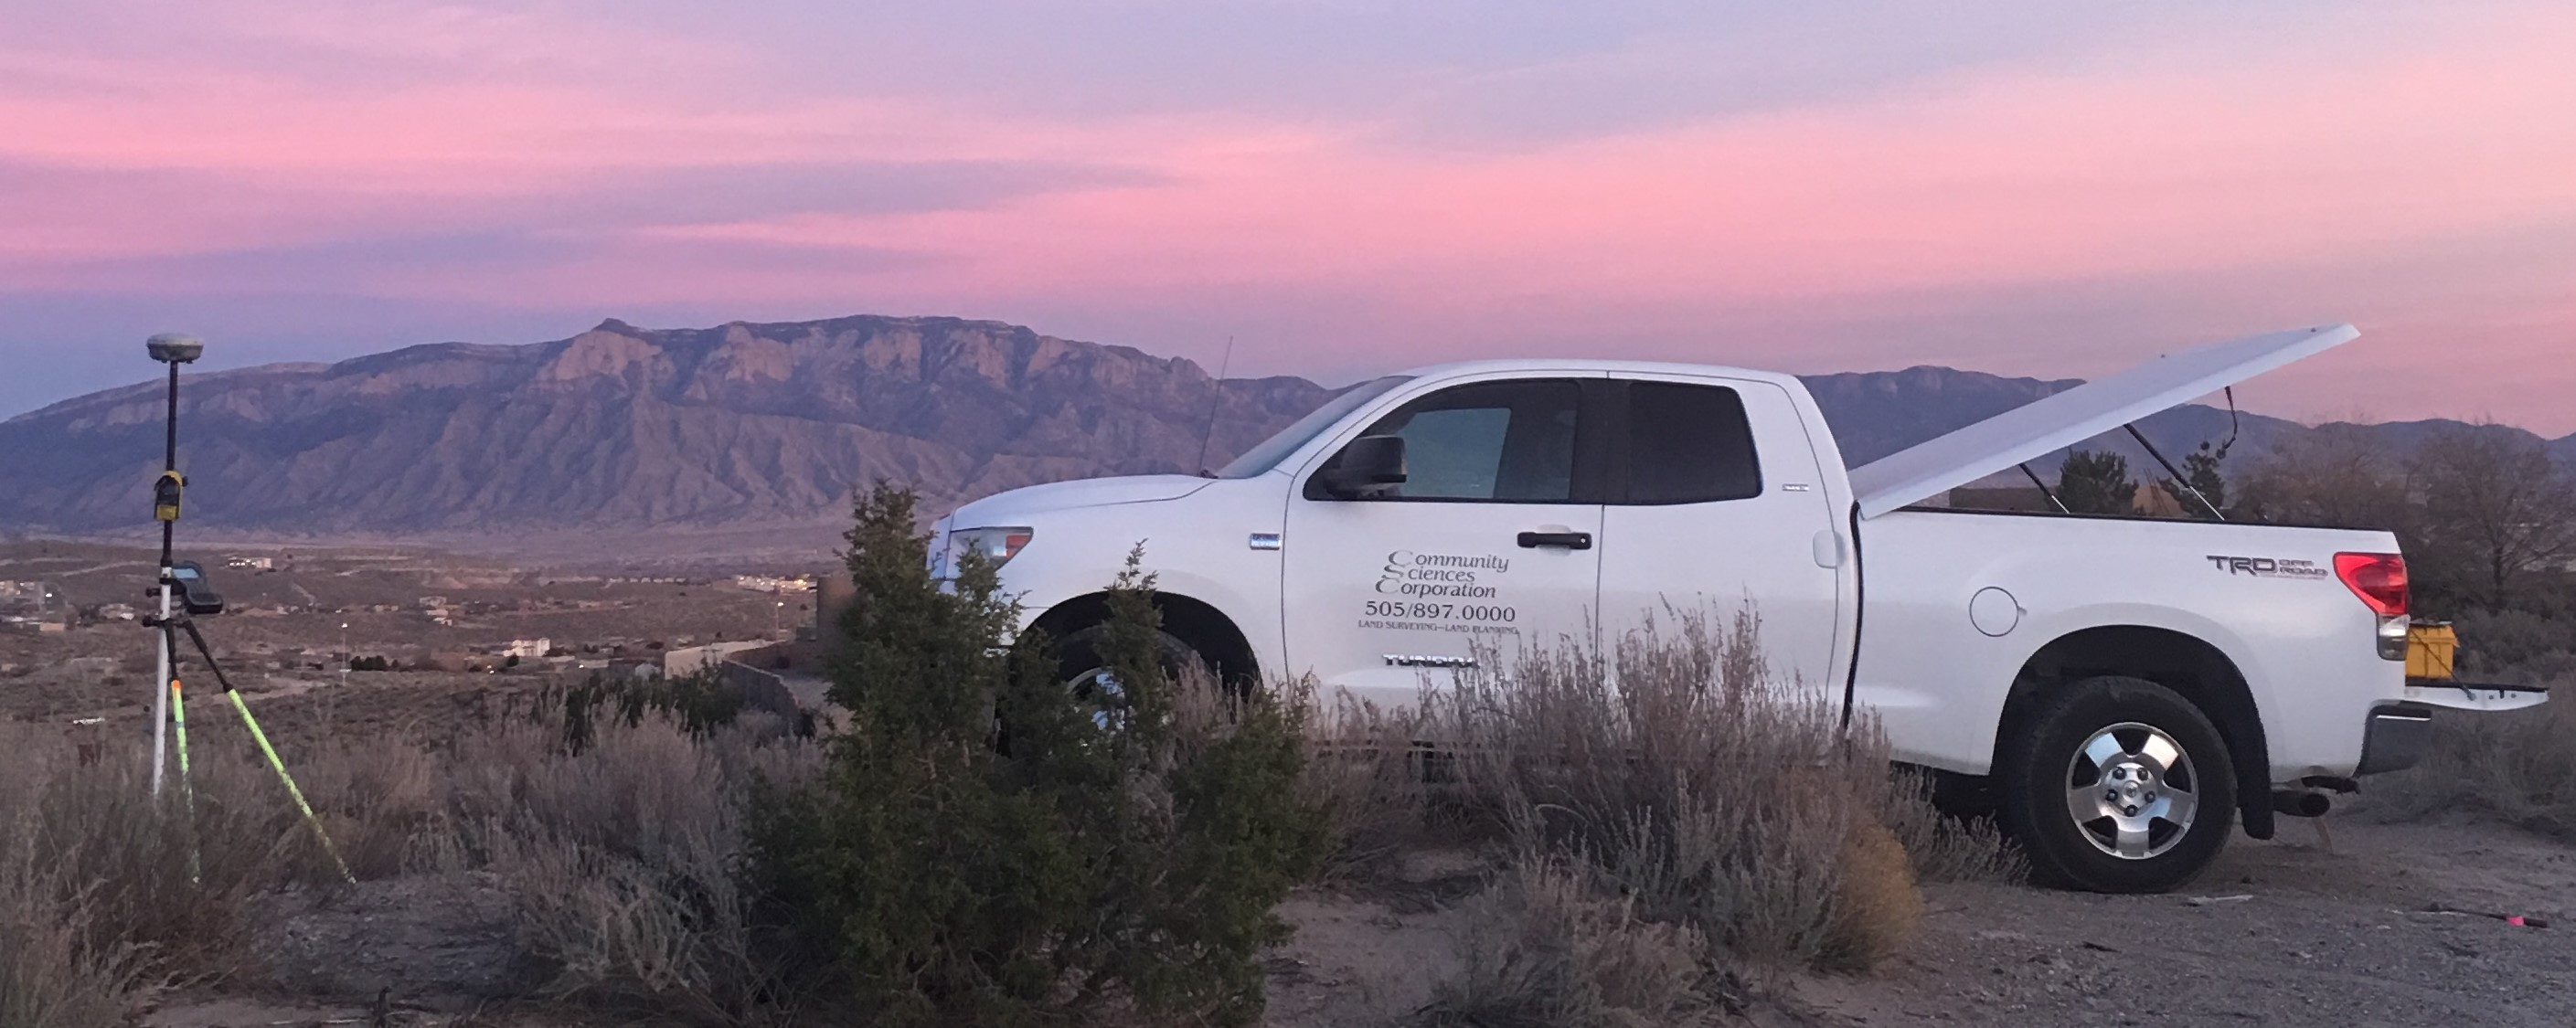 Our truck doing a mortgage survey in New Mexico.